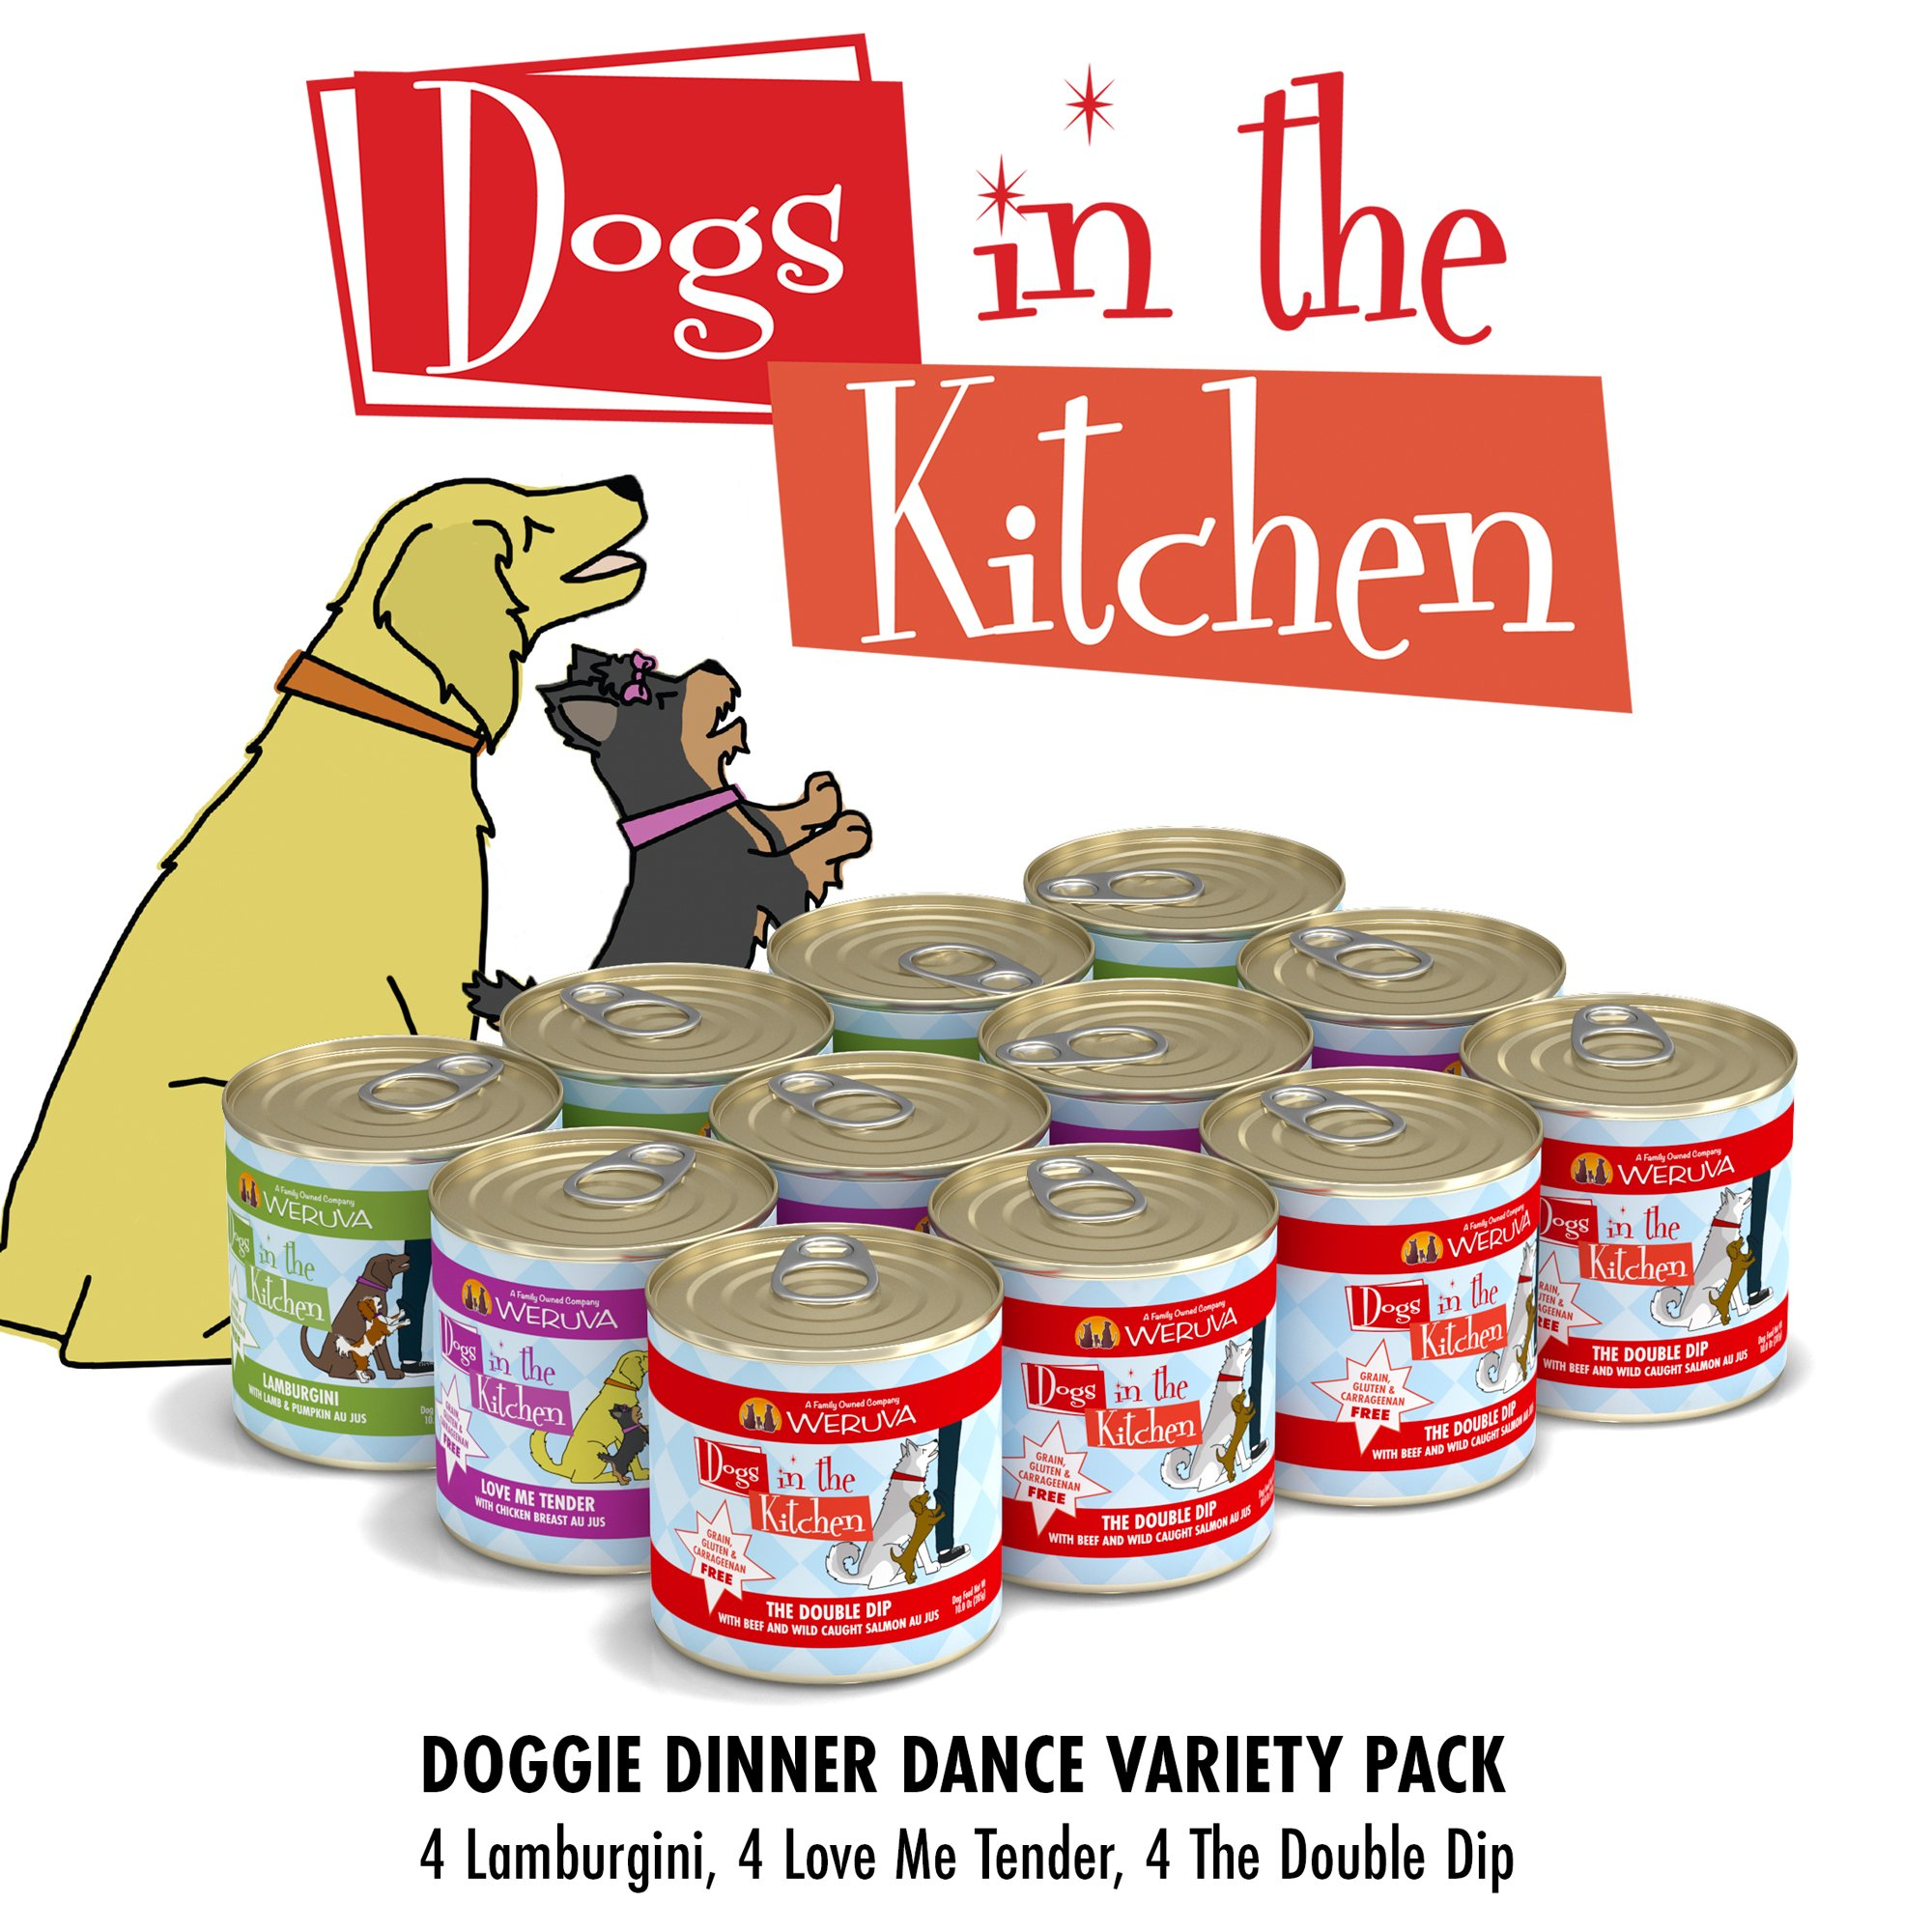 Dogs in the Kitchen Doggie Dinner Dance Variety Pack Wet Dog Food, 10 oz., Count of 12